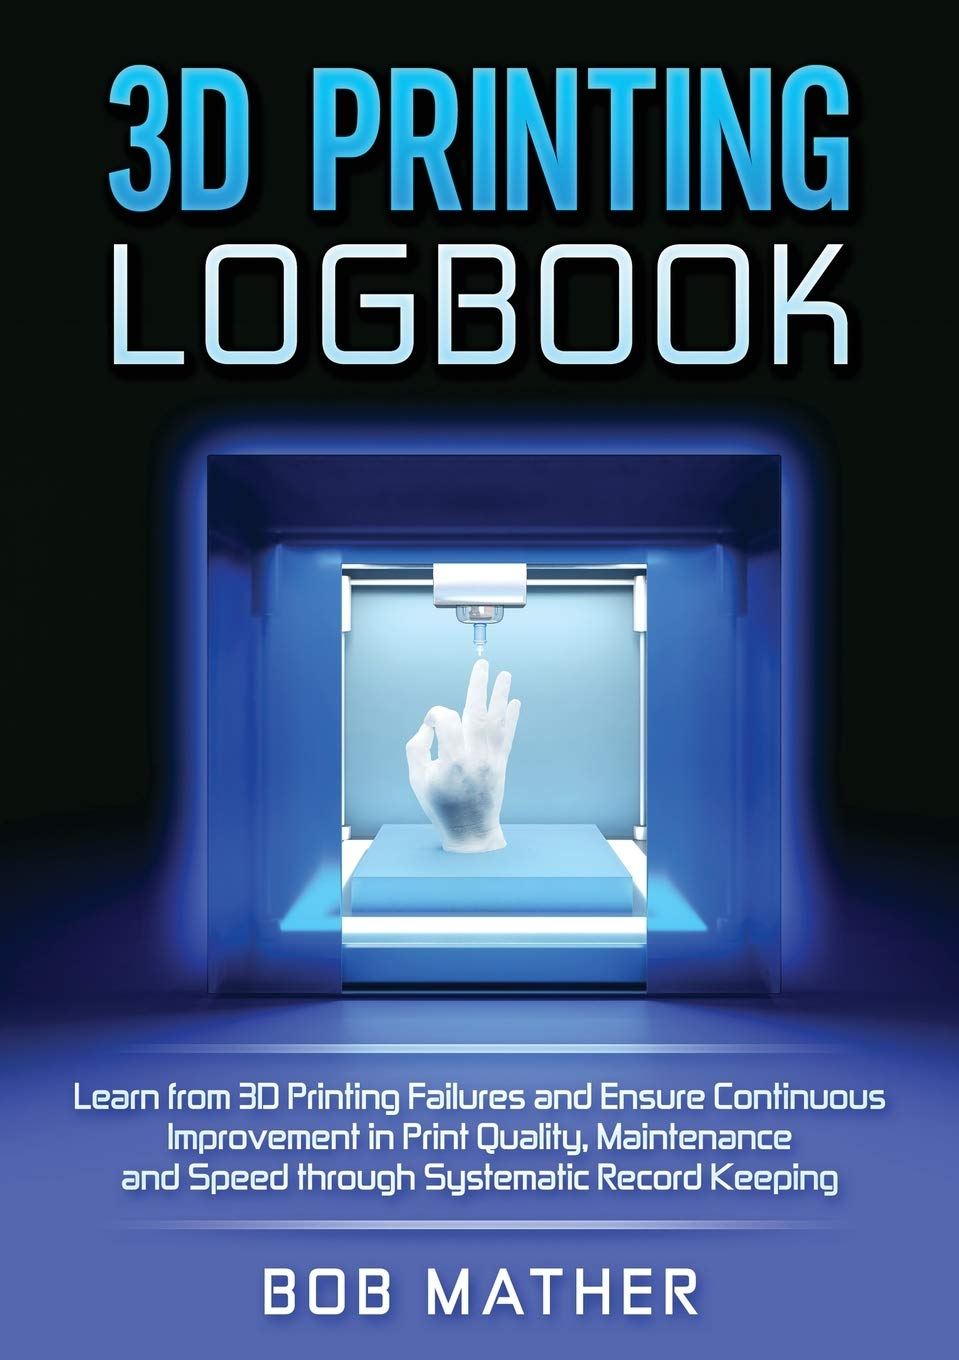 Image Of3D Printing Logbook: Learn From 3D Printing Failures And Ensure Continuous Improvement In Print Quality, Maintenance And S...